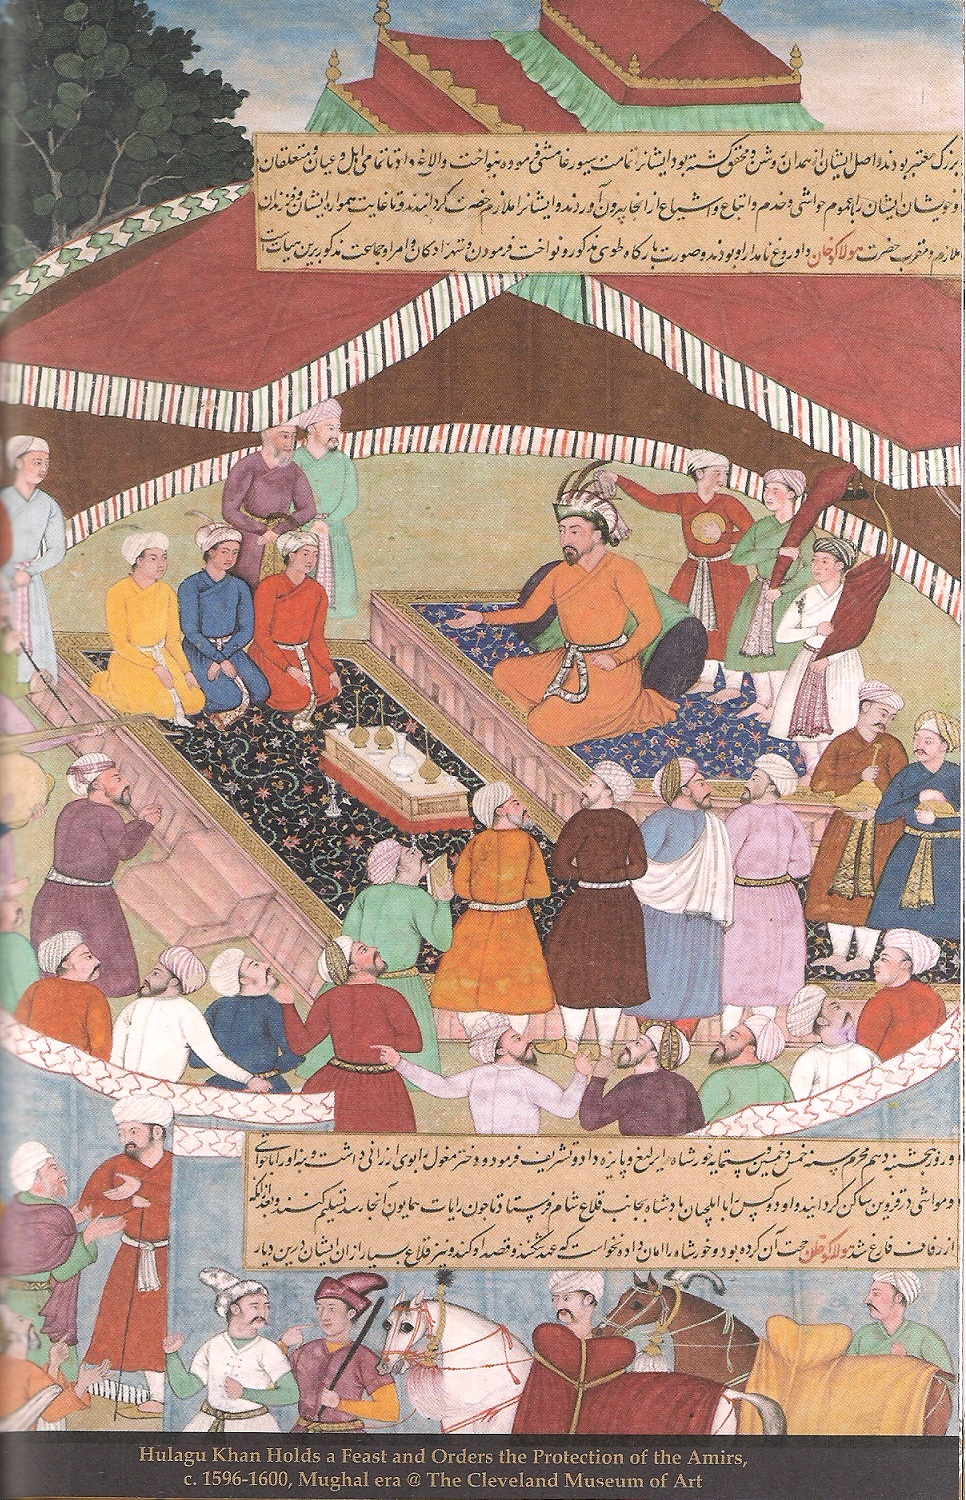 The Quatrians (Rubaiyat) of Khushal Khan Khattak